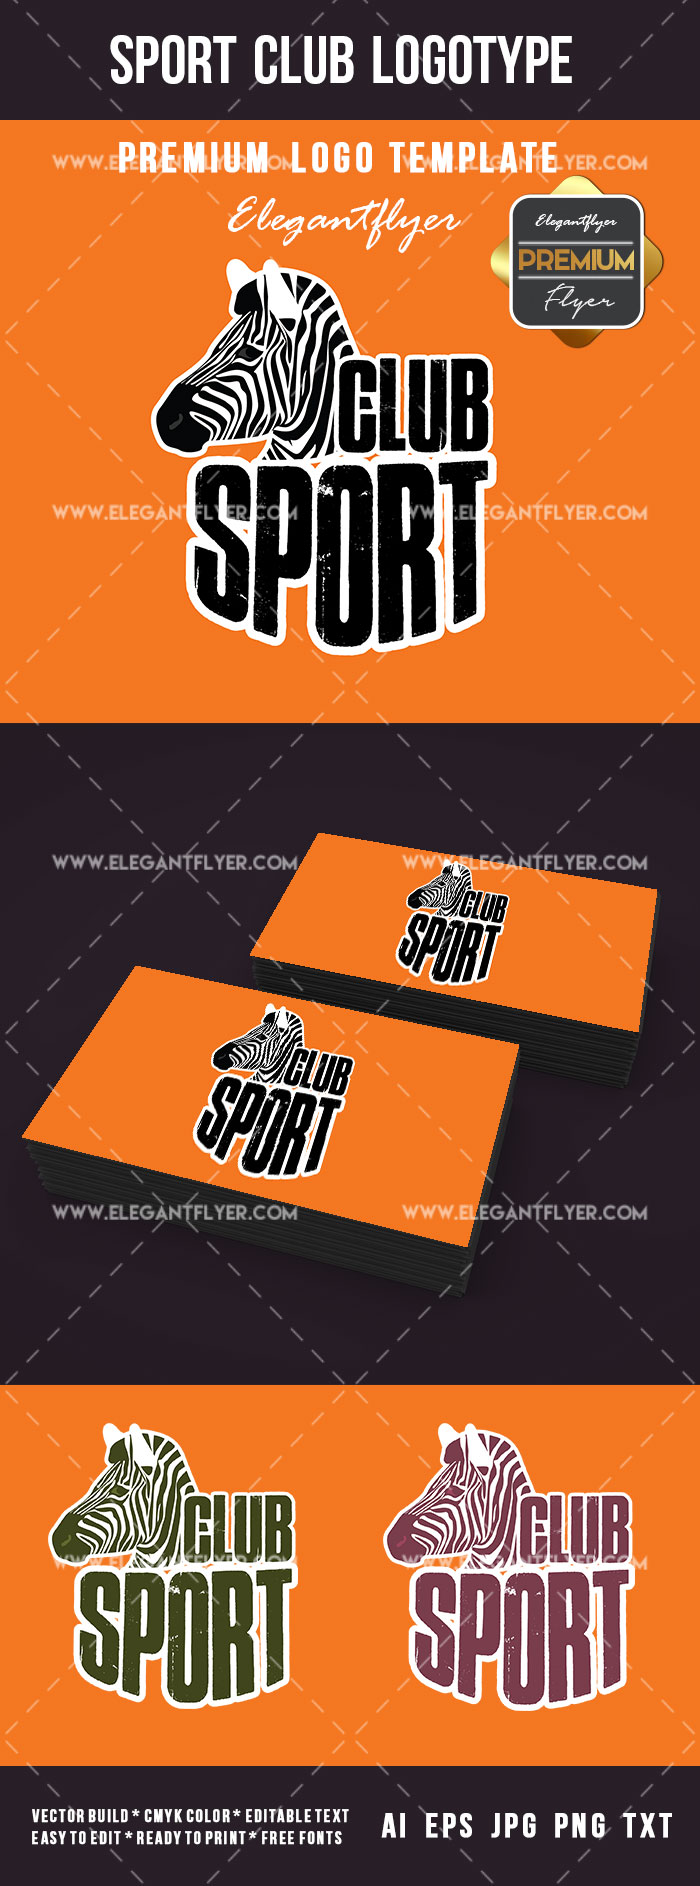 Sport Club Logotype PSD Template